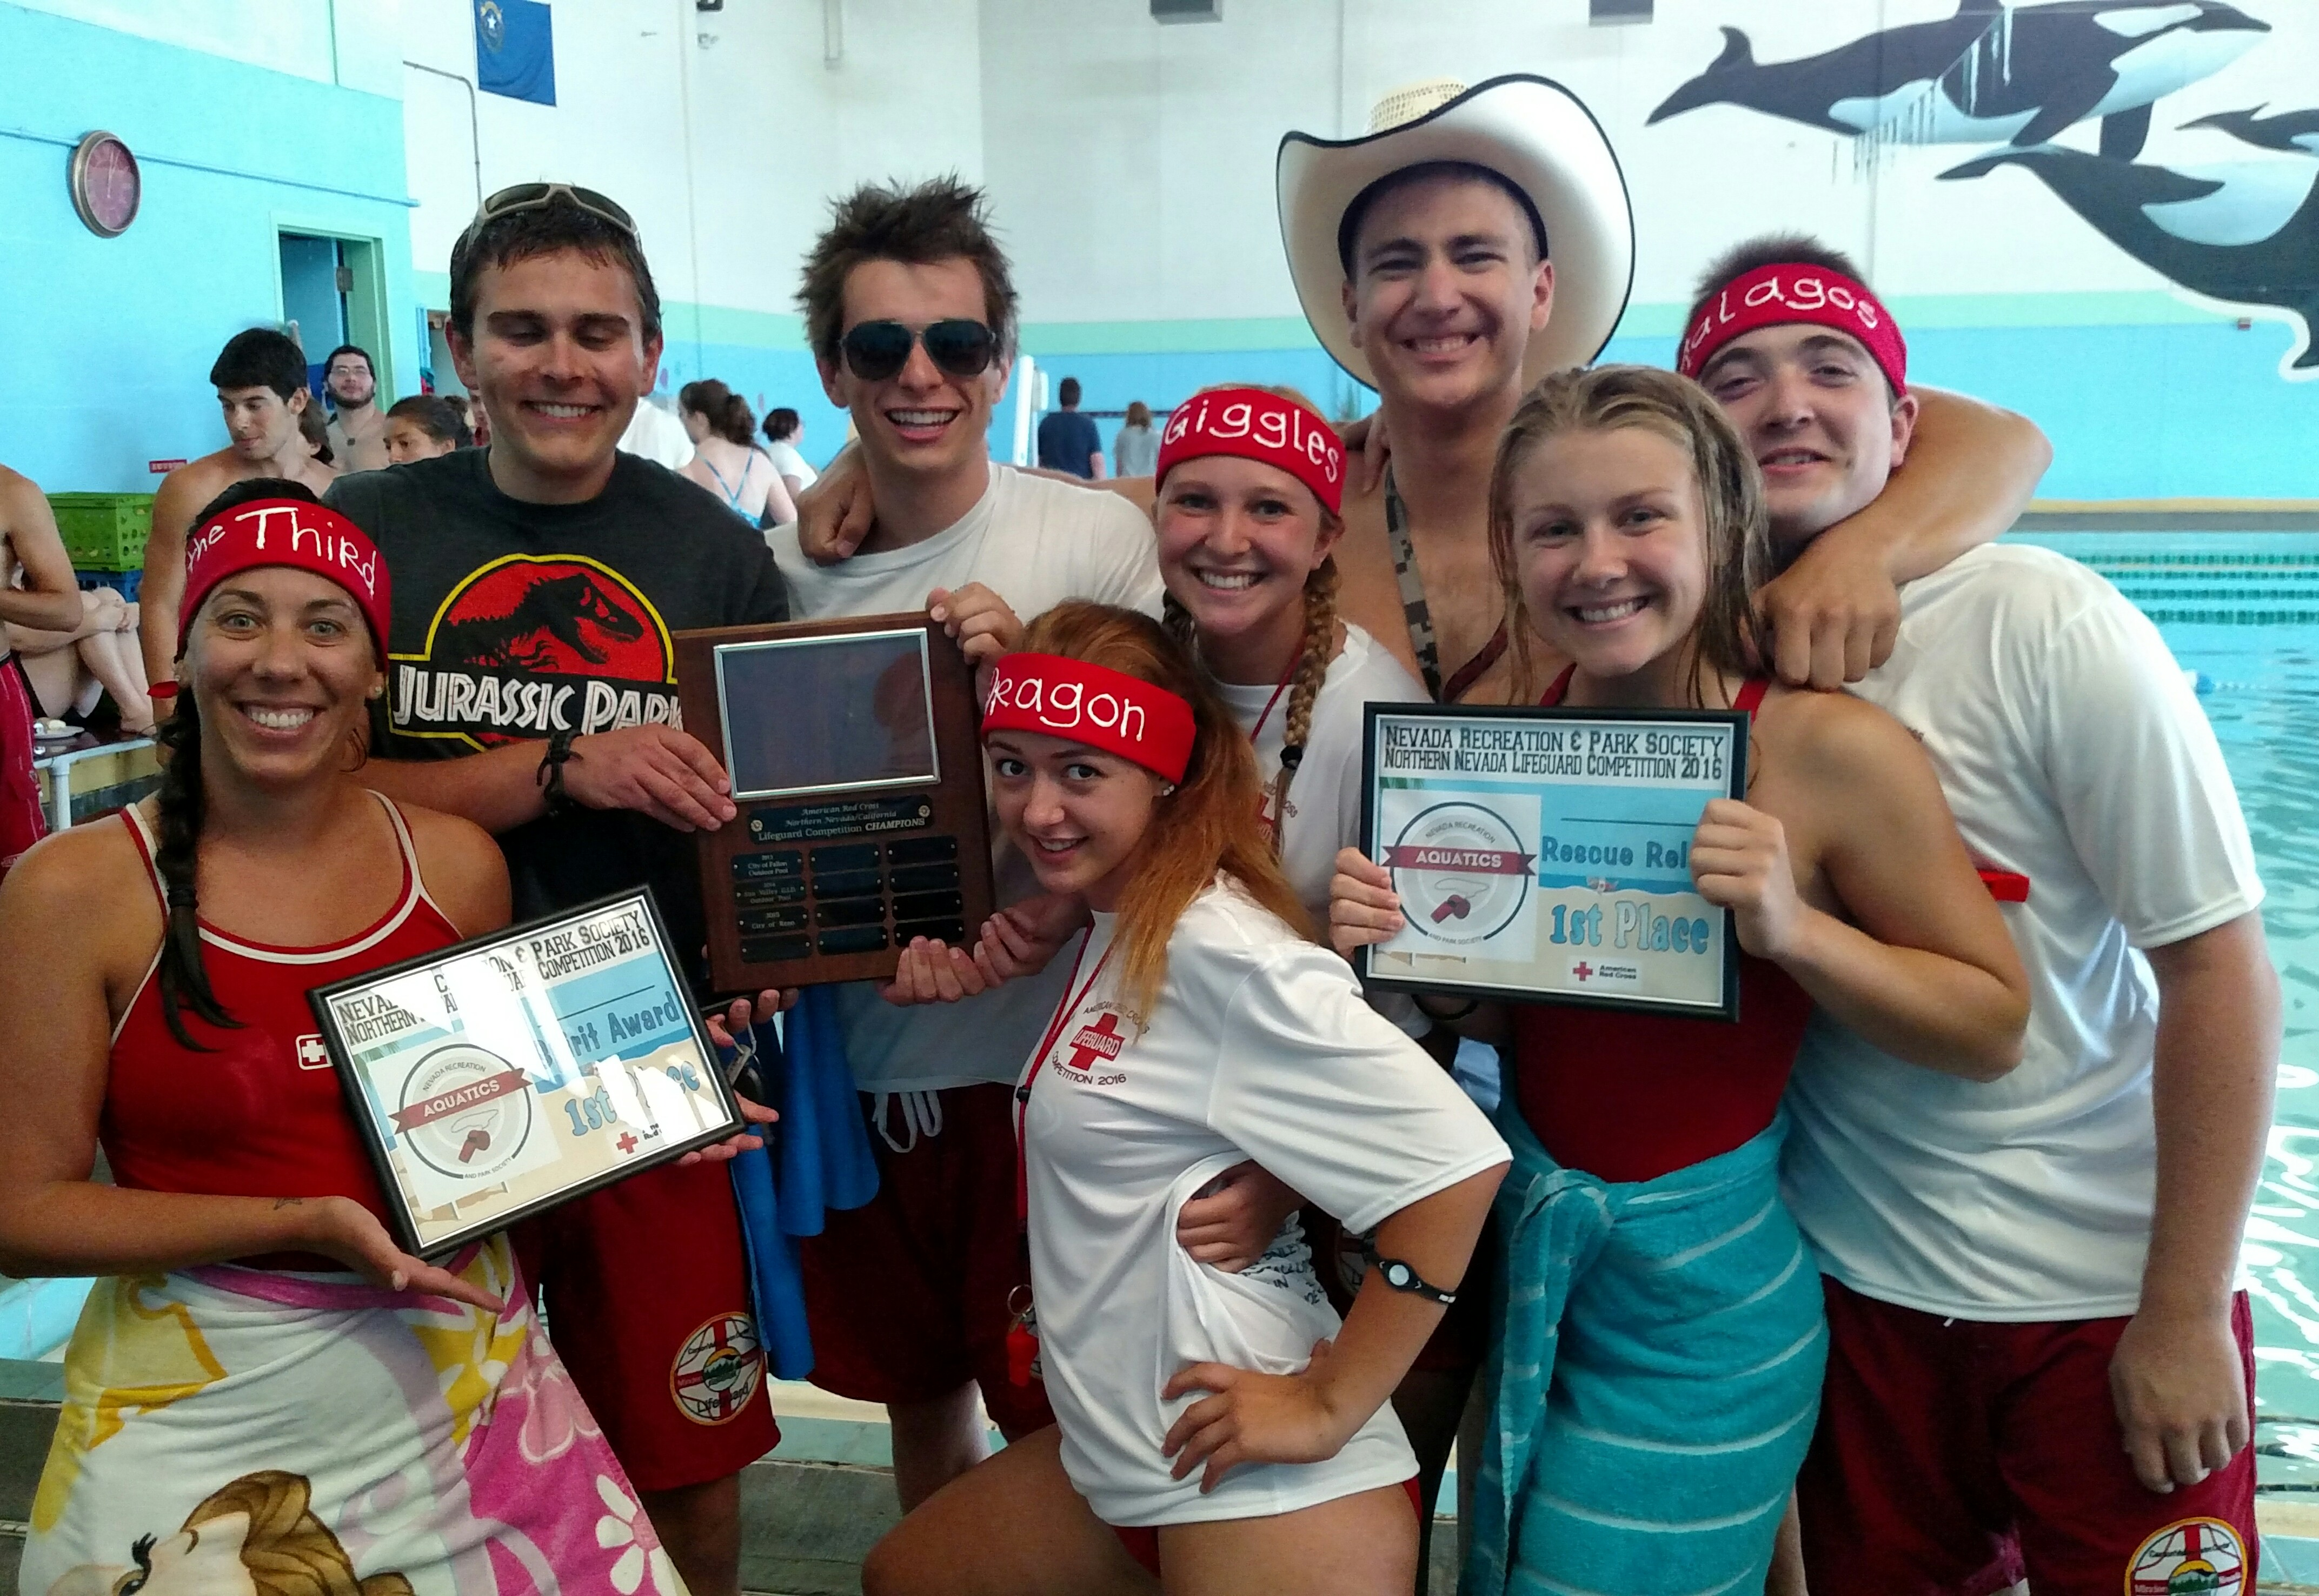 Lifeguard Games